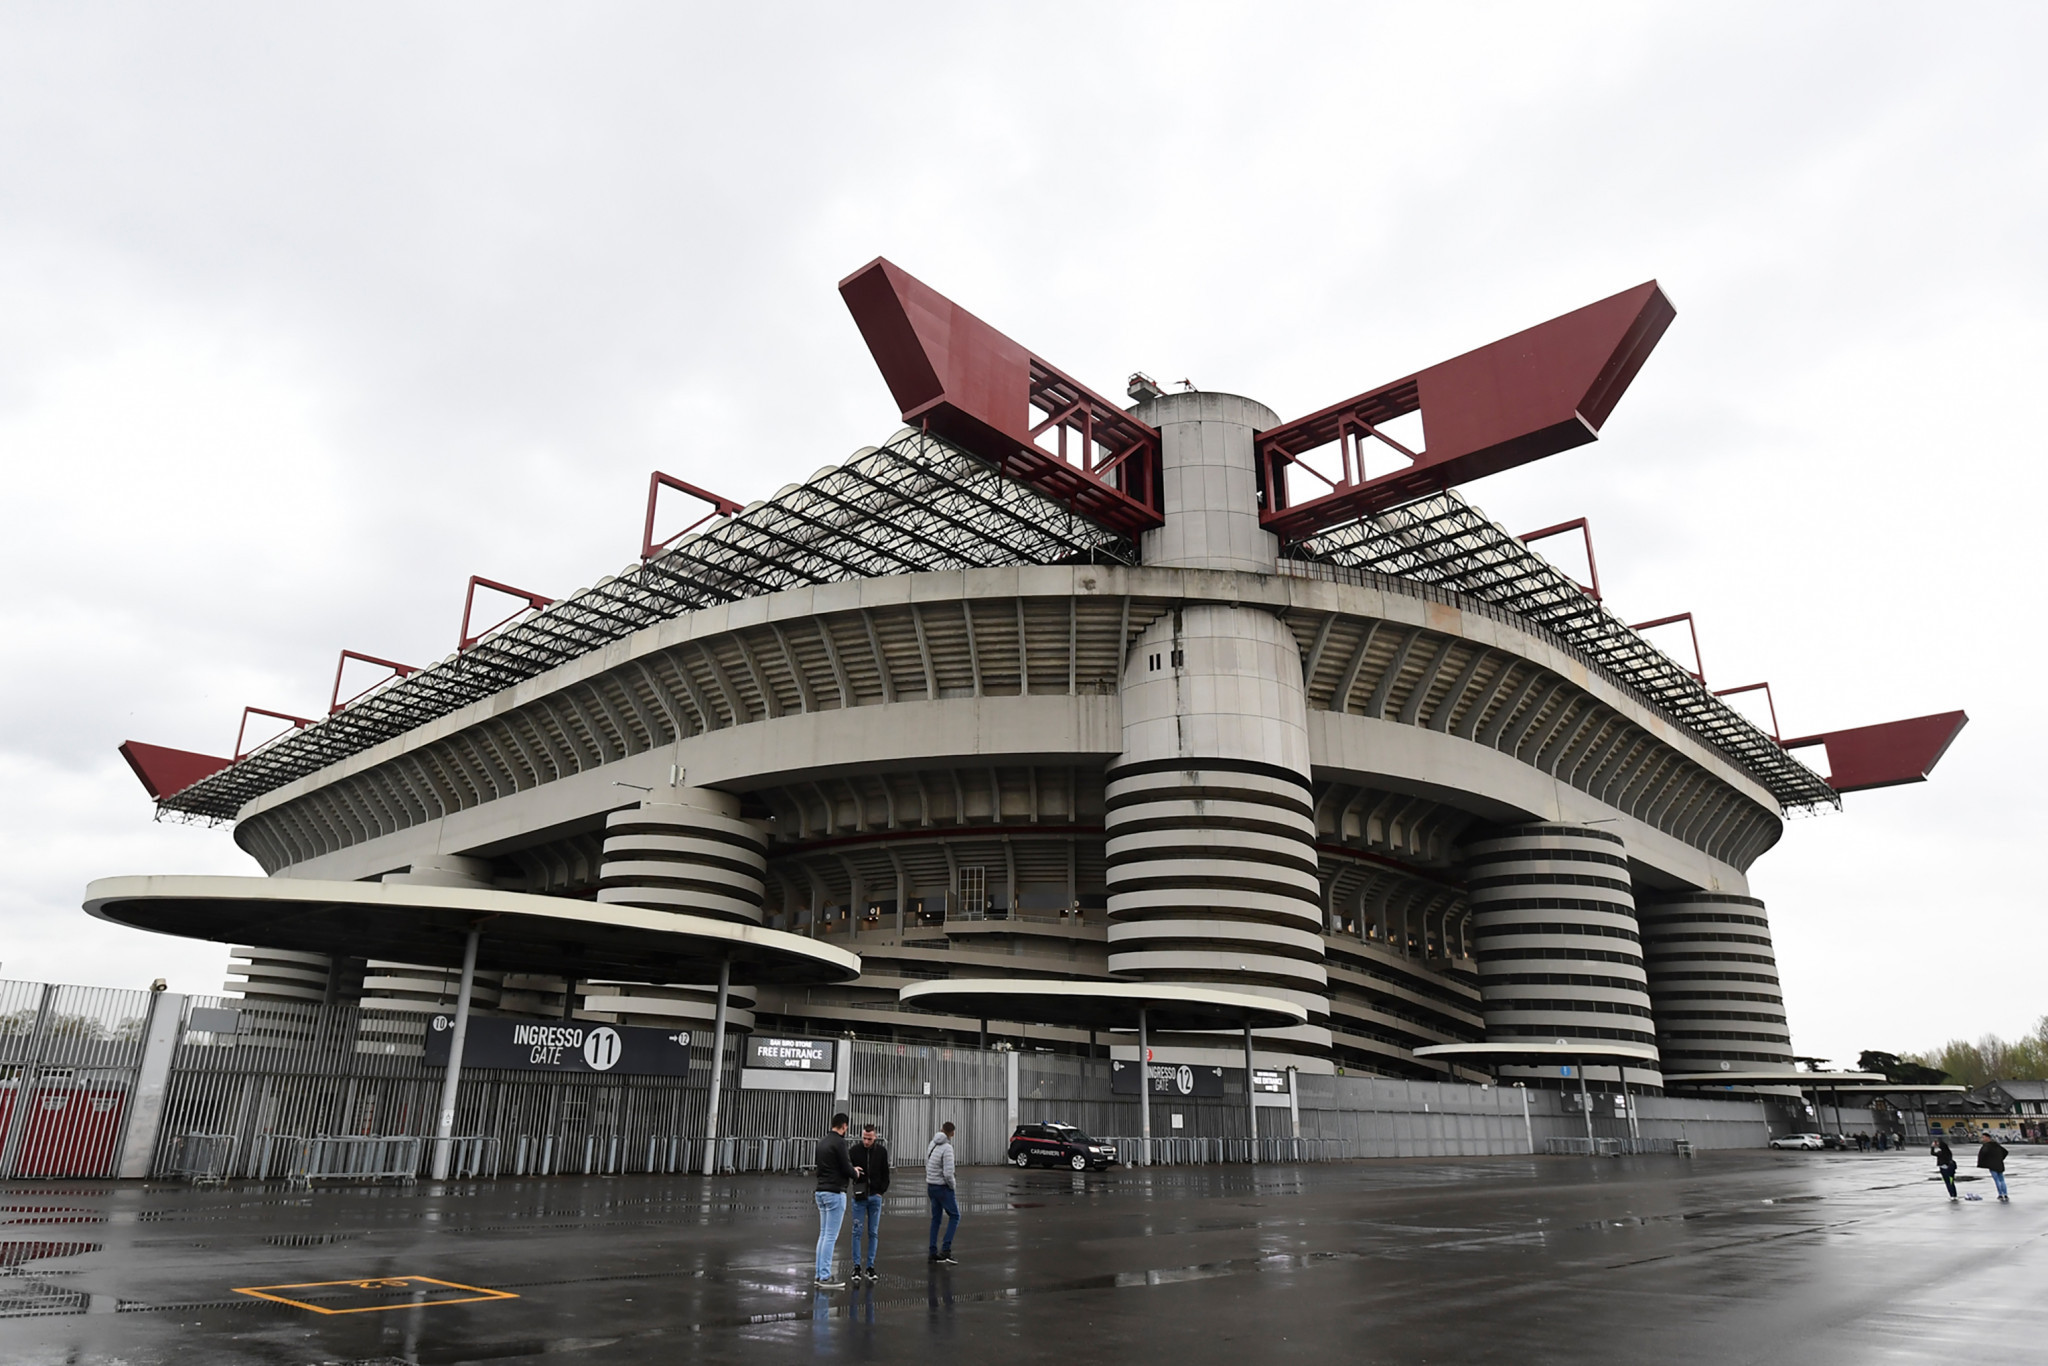 Even in the rain, San Siro was an impressive sight for the IOC Evaluation Commission ©Getty Images